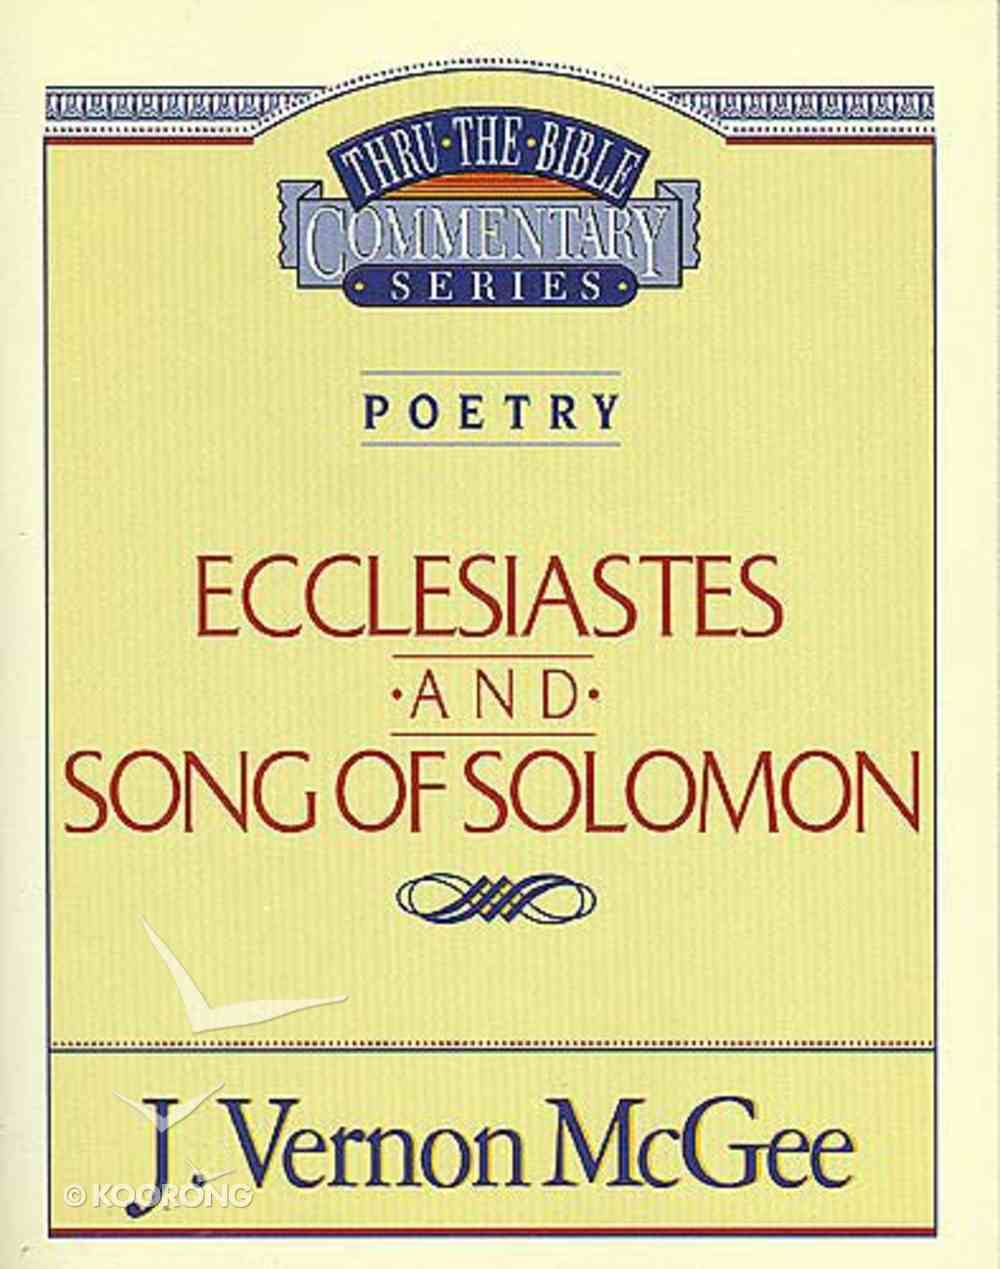 Thru the Bible OT #21: Ecclesiastes/Song of Solomon (#21 in Thru The Bible Old Testament Series) Paperback